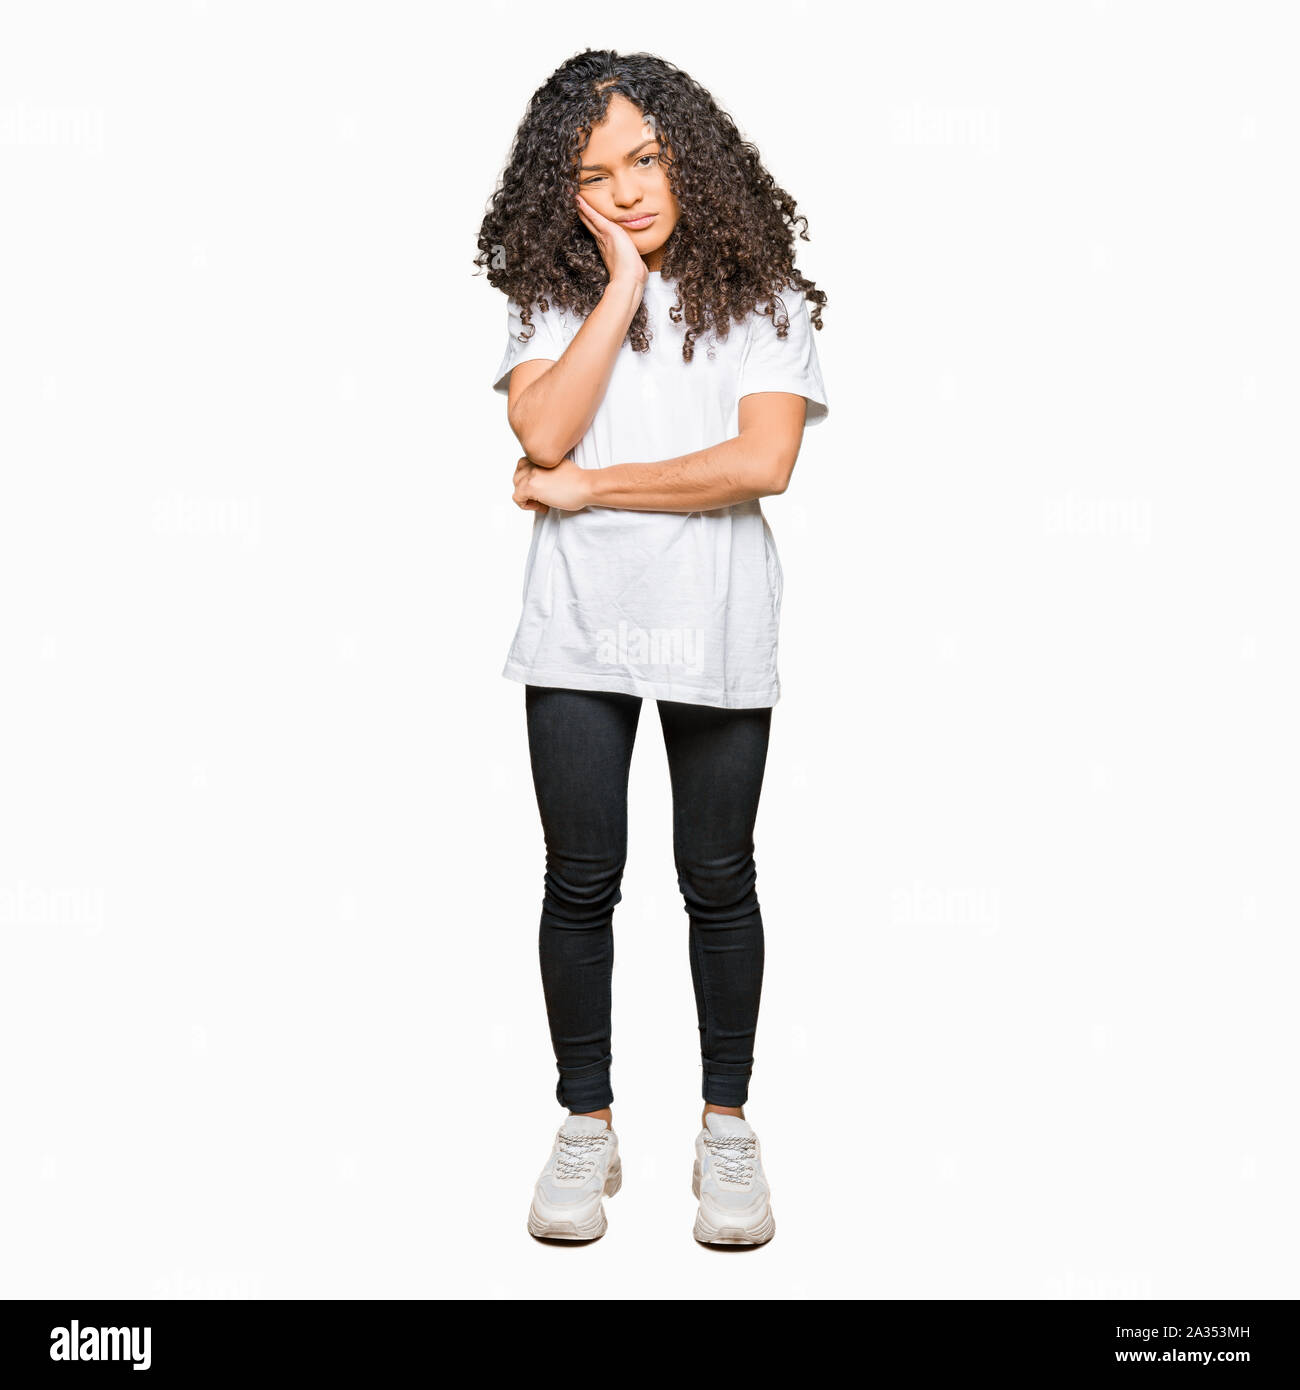 Young beautiful woman with curly hair wearing white t-shirt thinking looking tired and bored with depression problems with crossed arms. Stock Photo